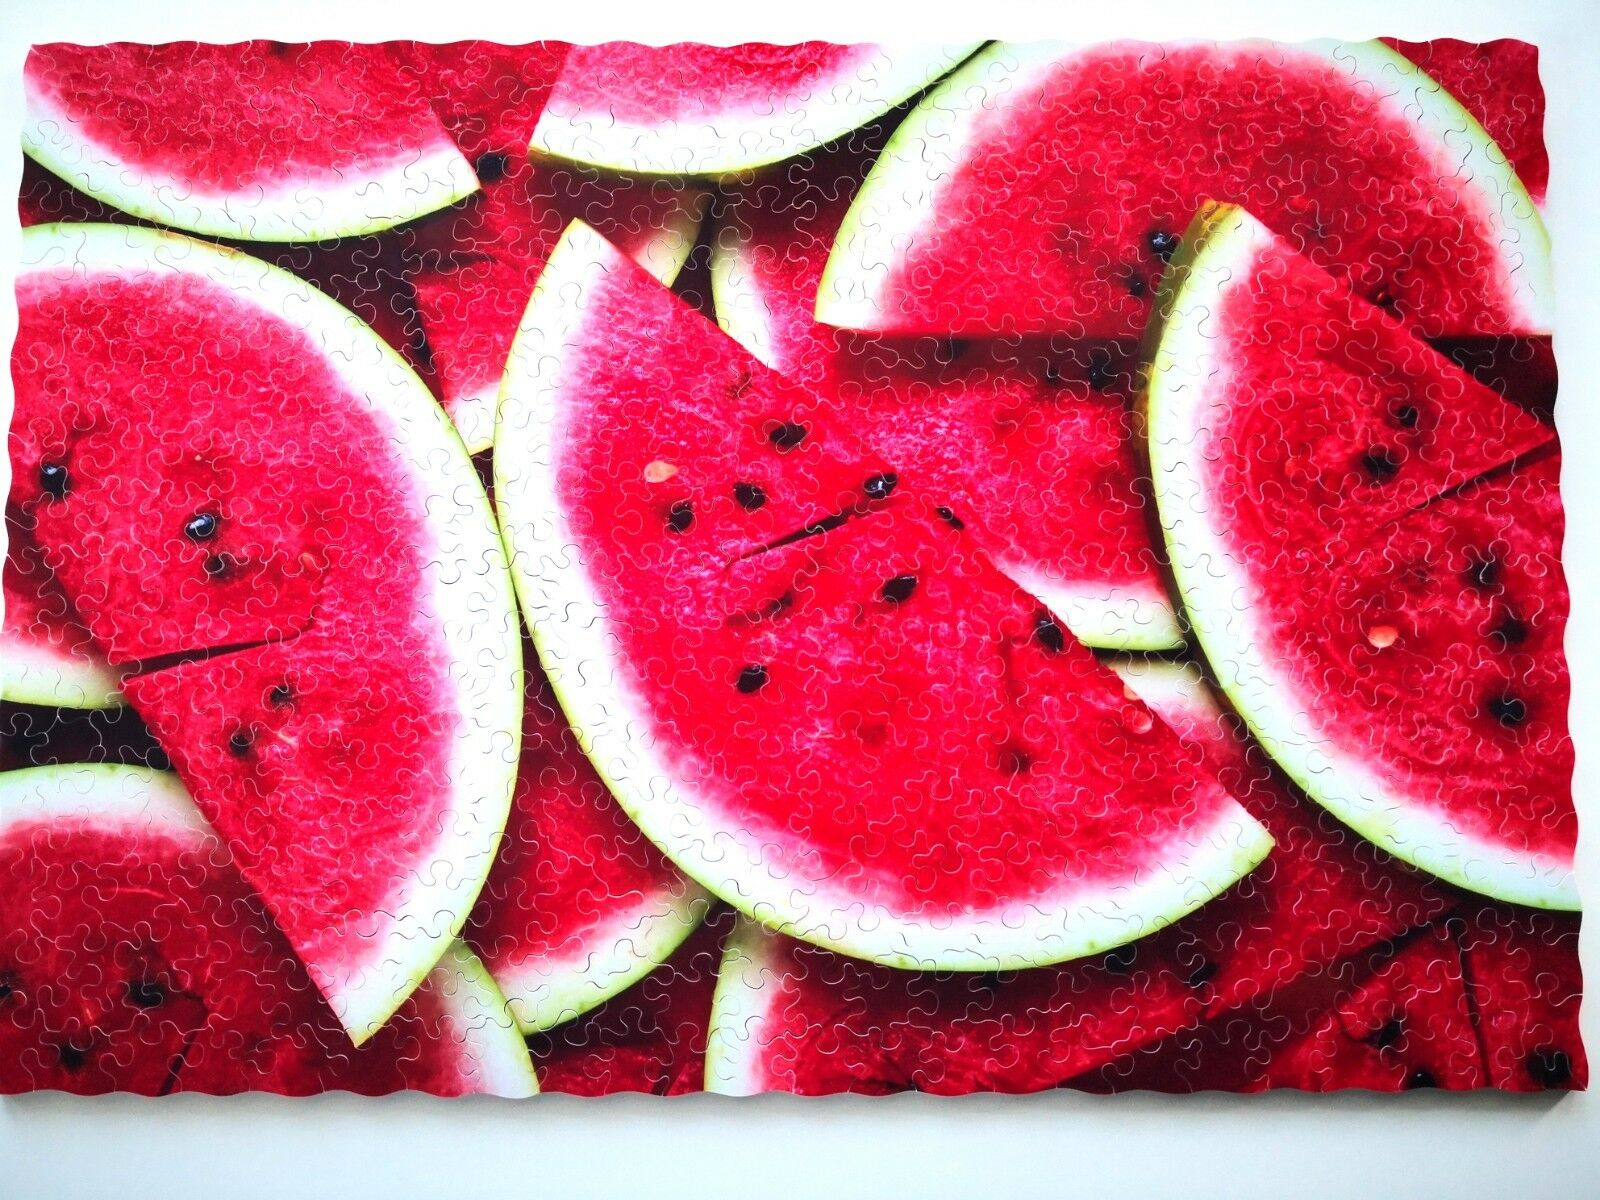 New Hand Cut Wooden Jigsaw Puzzle WATERMELON 440-500 pcs in Wooden Box